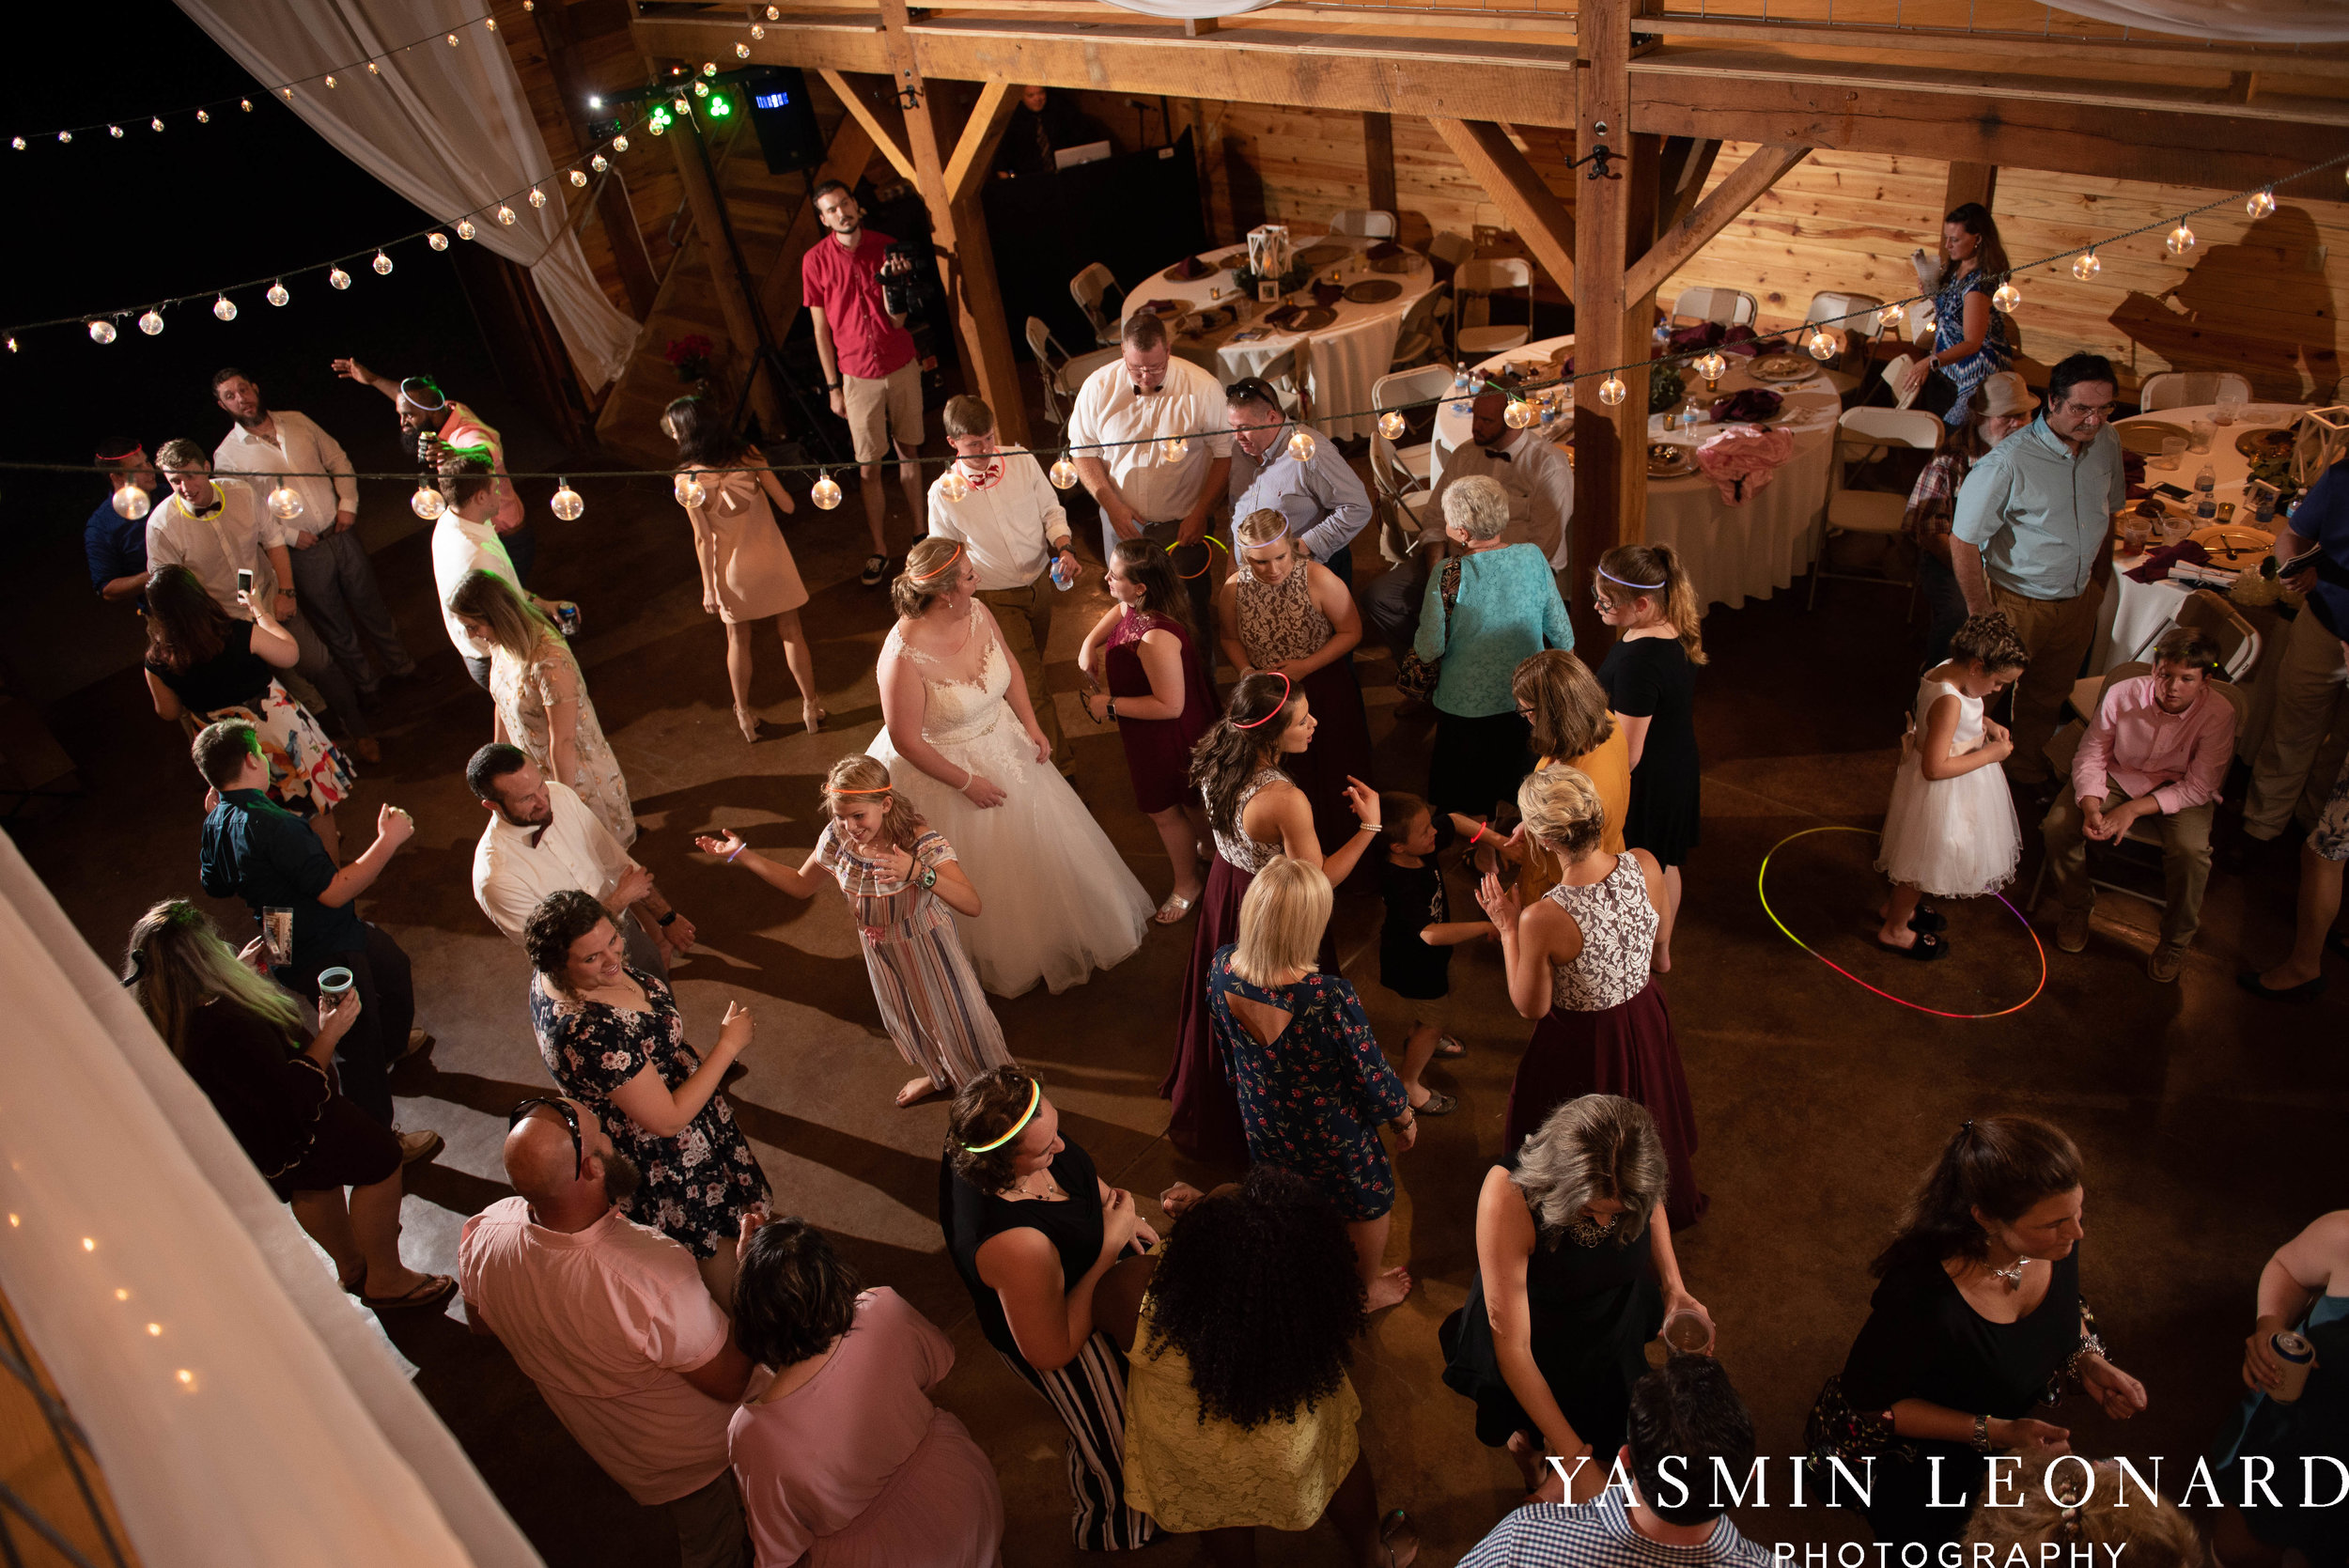 Danner Farms - NC Wedding Venues - NC Barns - Statesville NC - NC Wedding Photographer - High Point Wedding Photographer - Yasmin Leonard Photography-94.jpg